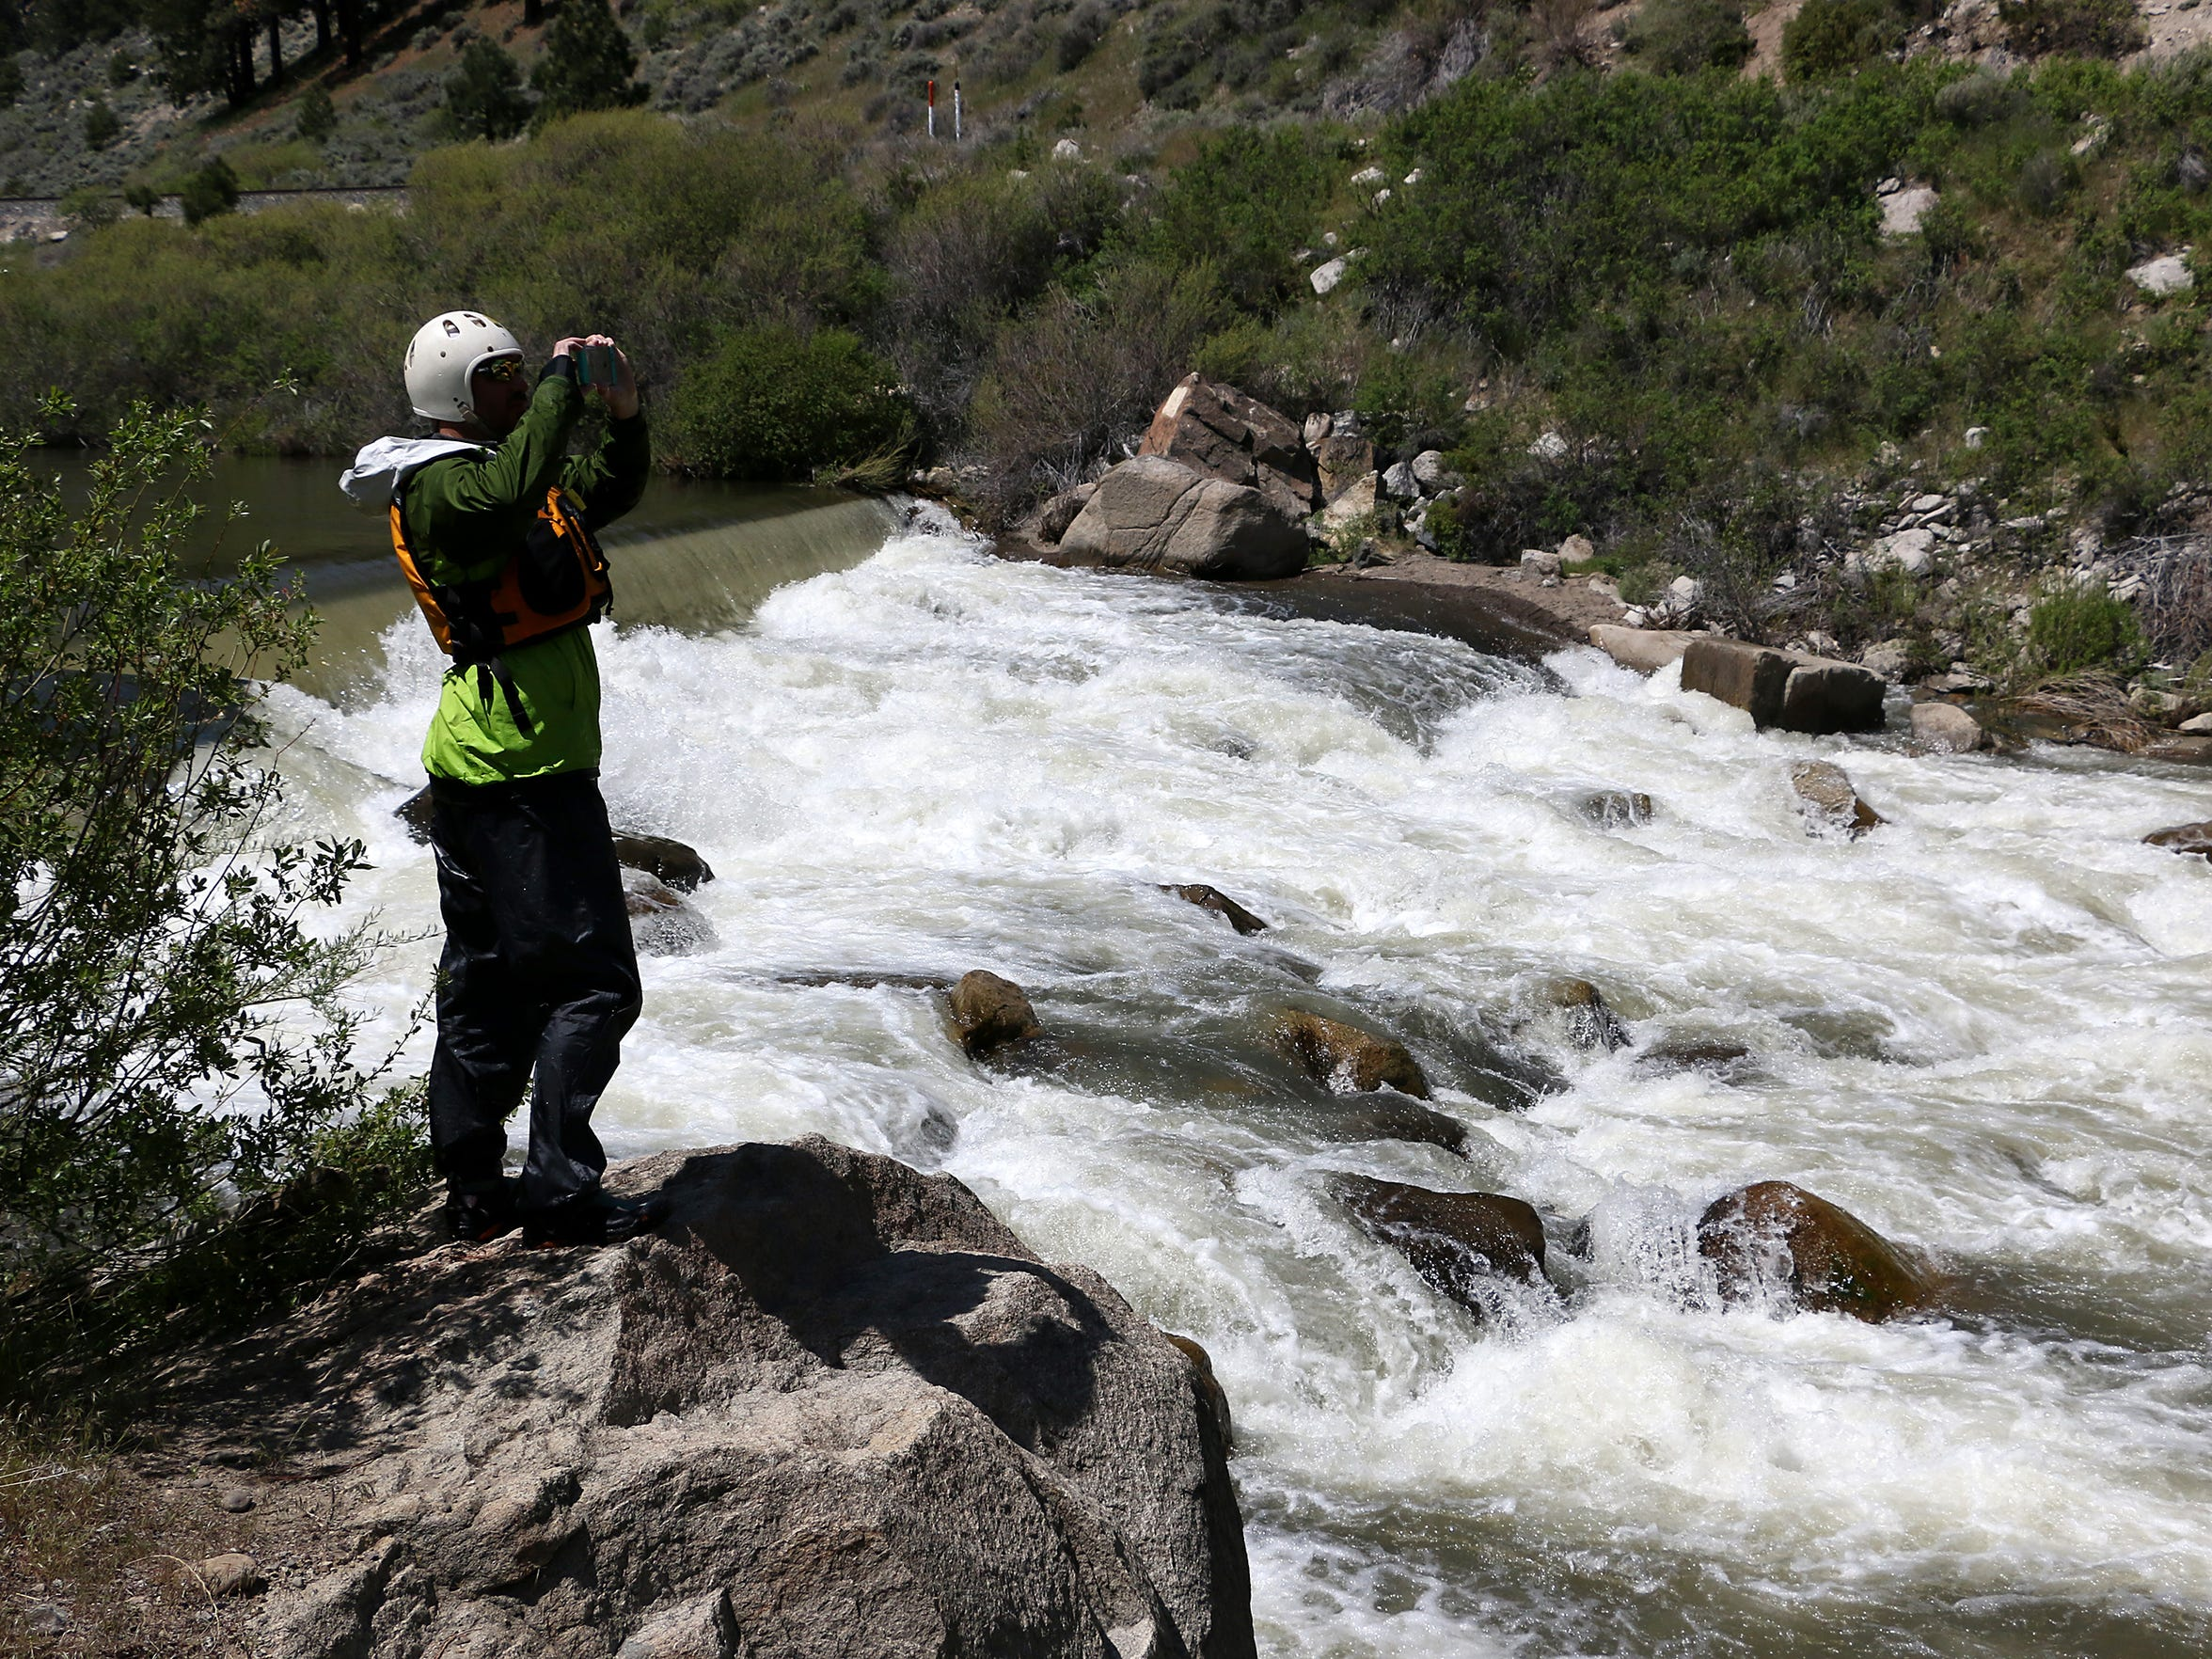 Scouting rapids on the Truckee River. RGJ reporters Ben Spillman and Jason Bean paddle the Truckee River from Truckee to Pyramid Lake during May of 2016.